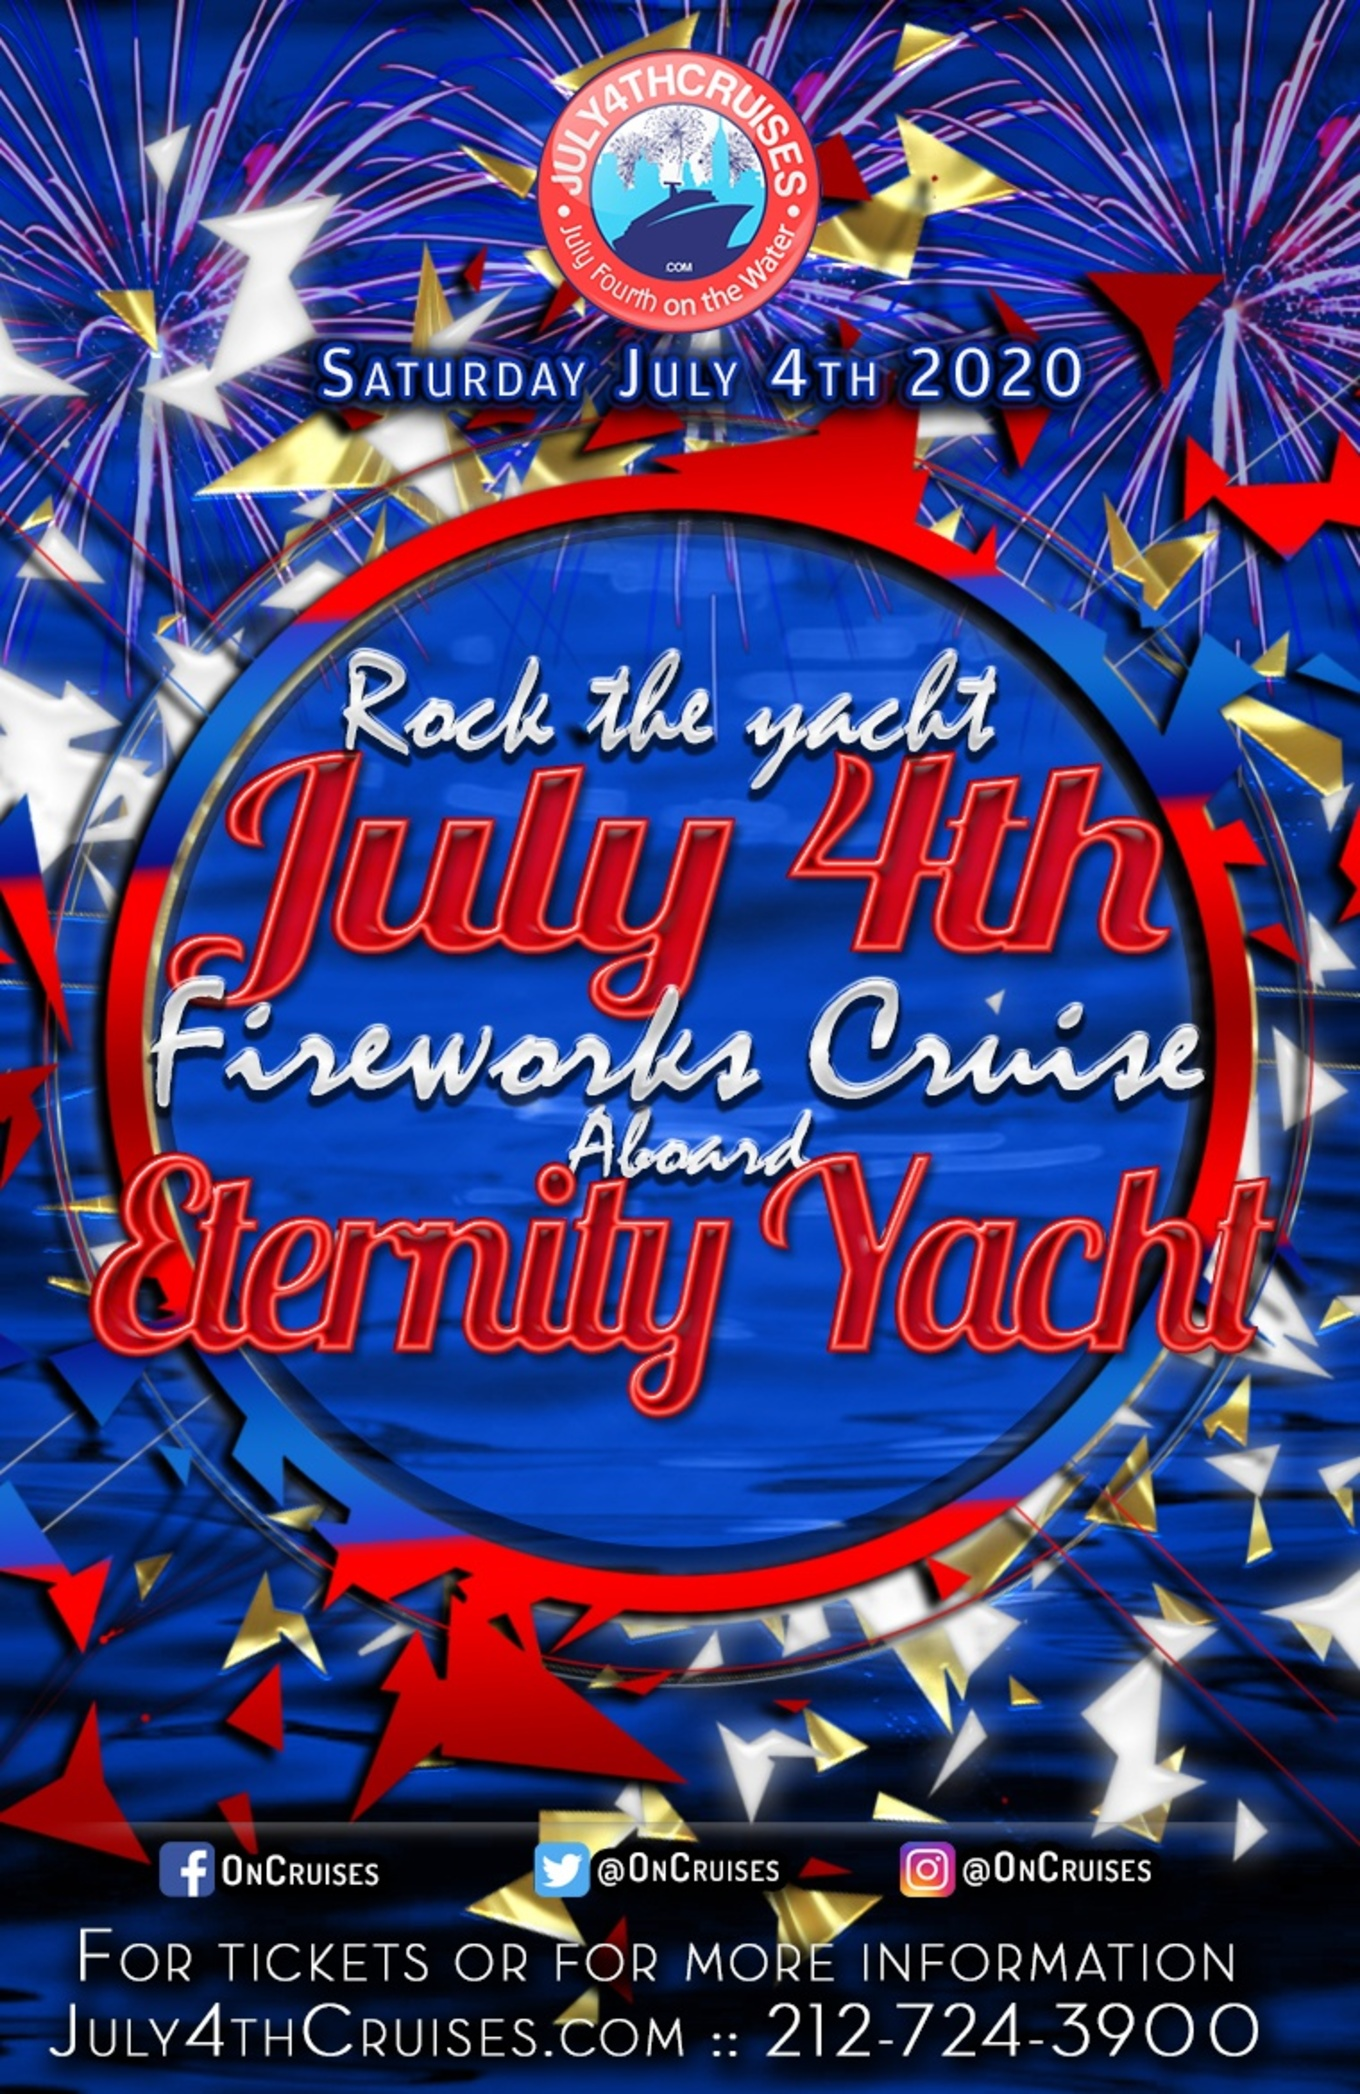 July 4th Events Near Me 2020.Rock The Yacht July 4th Fireworks Cruise Aboard The Eternity